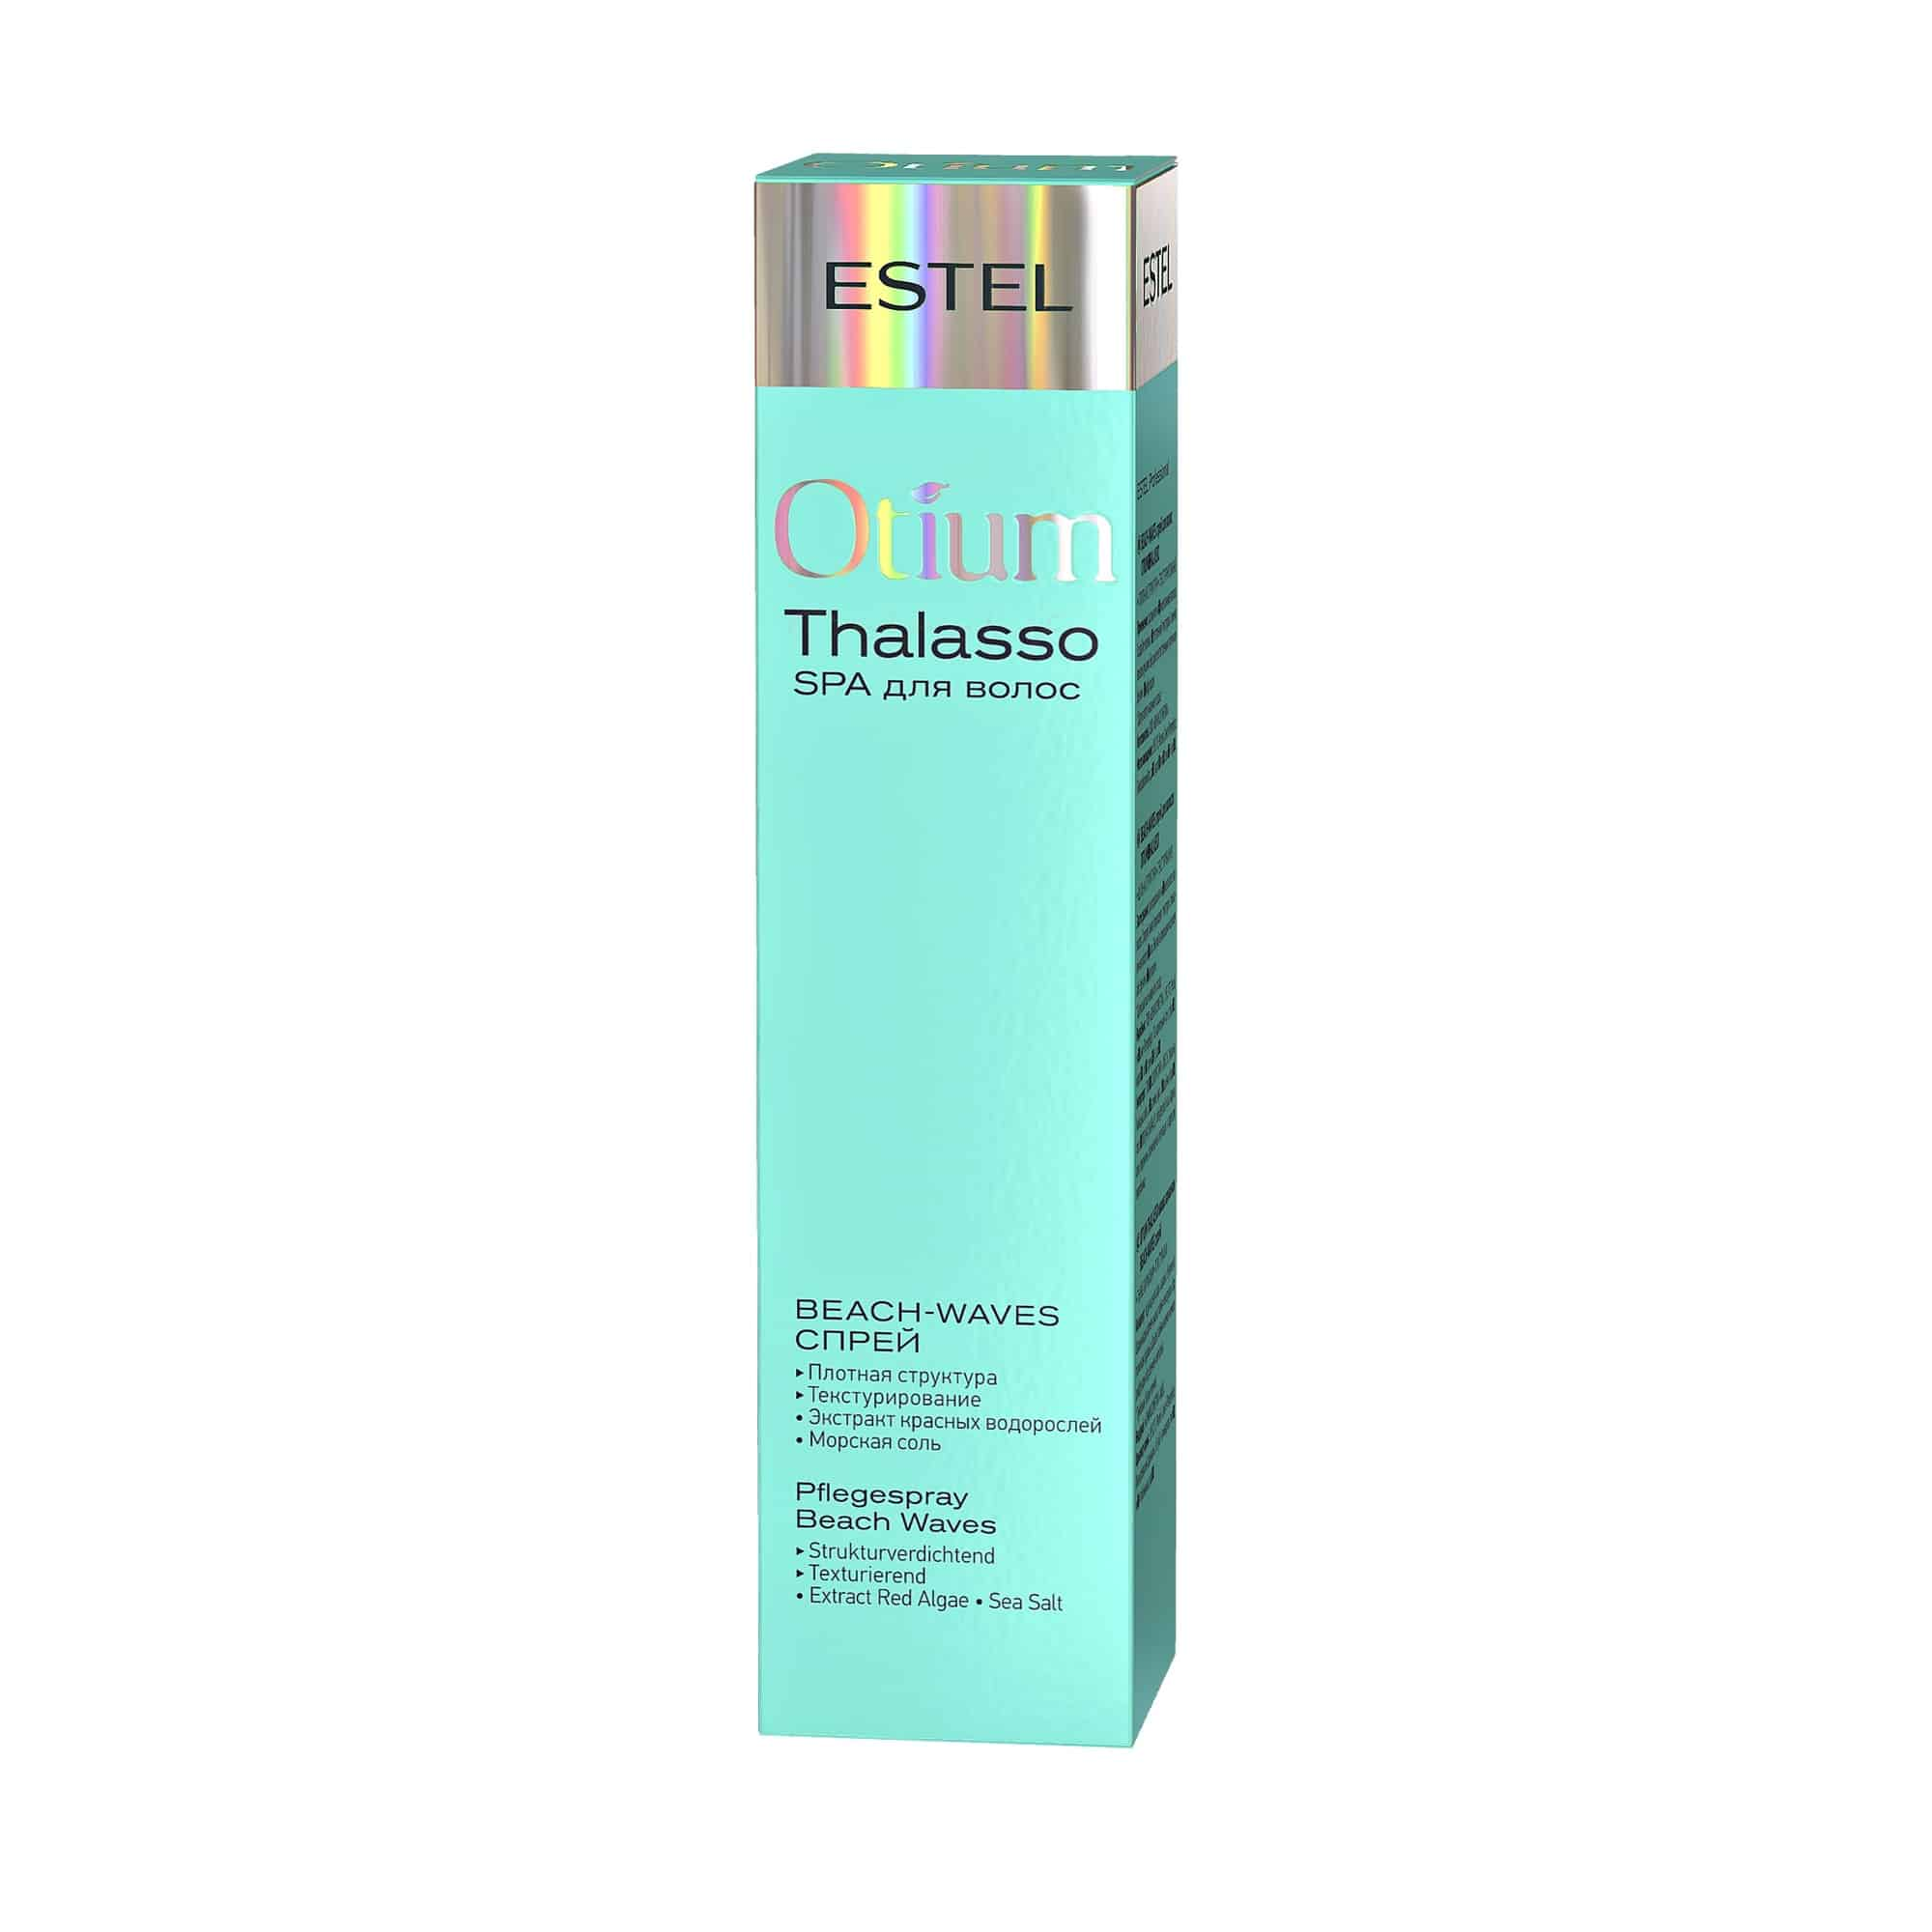 Otium Thalasso Pflegespray Beach Waves von ESTEL